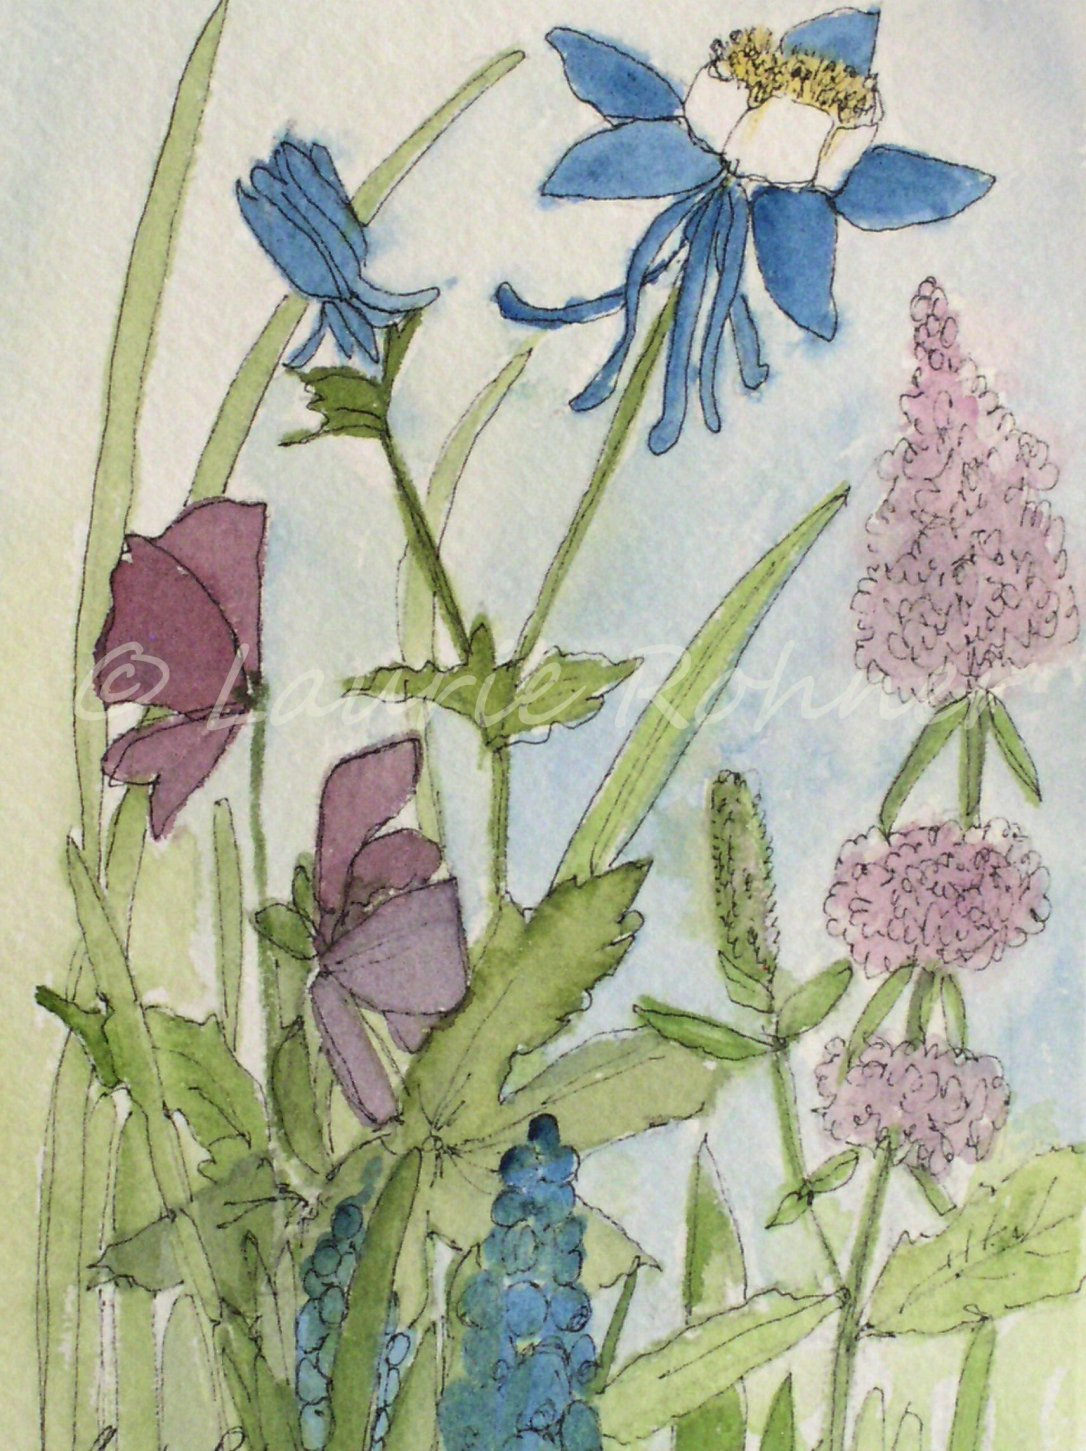 Botanical Garden Flower Art by Laurie Rohner